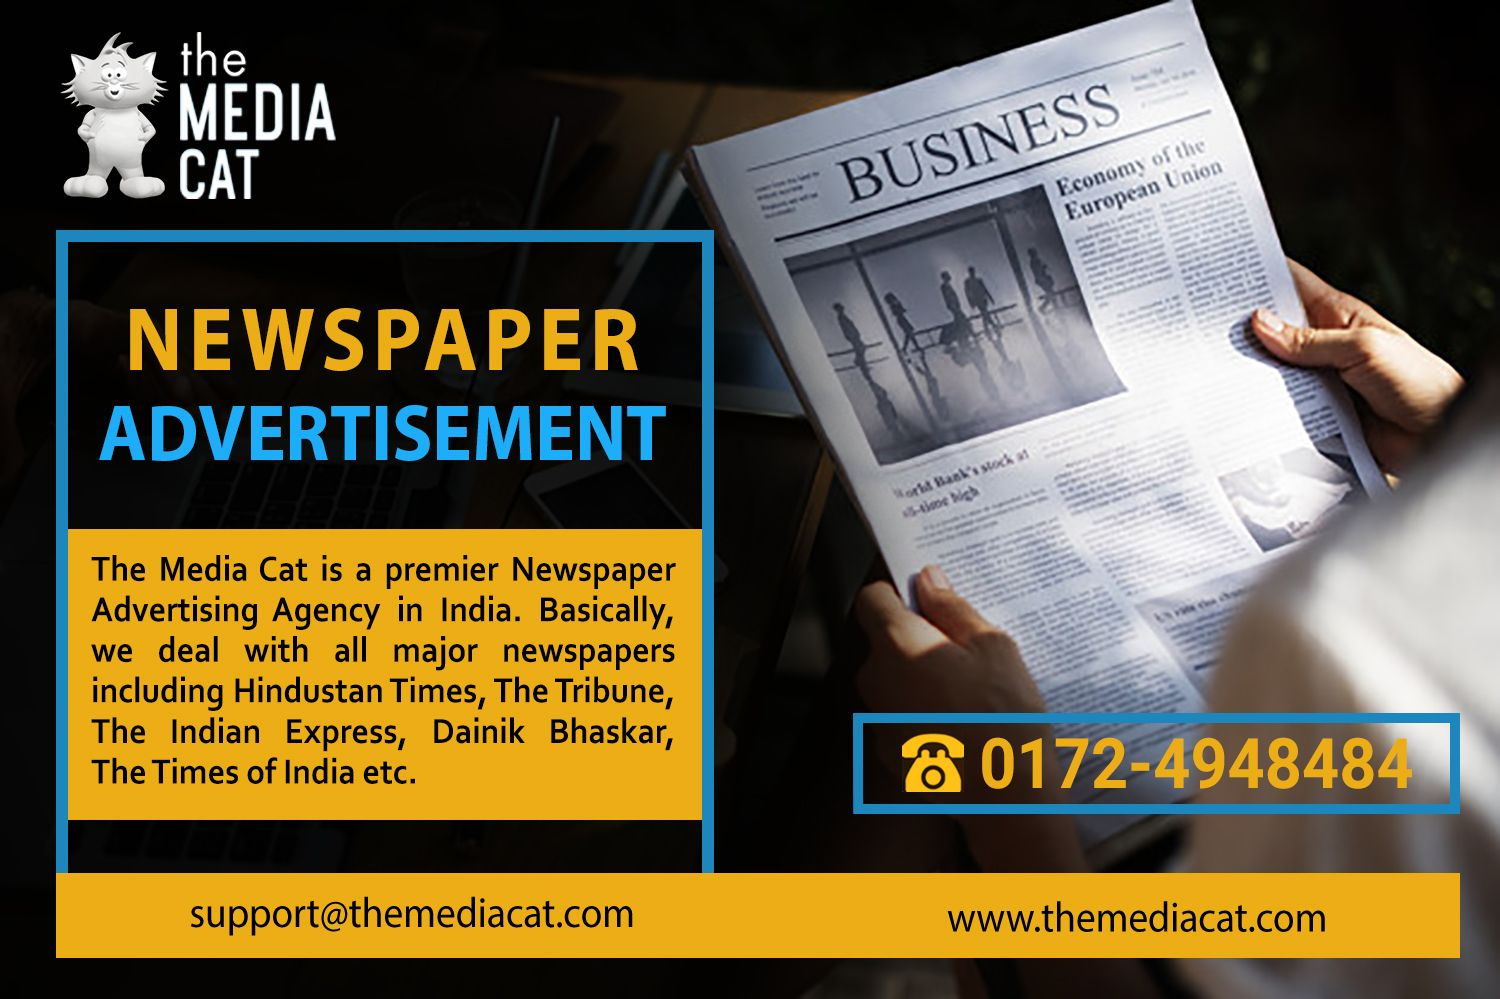 Newspaper Advertisement Is One Of The Best Way For Entrepreneurs